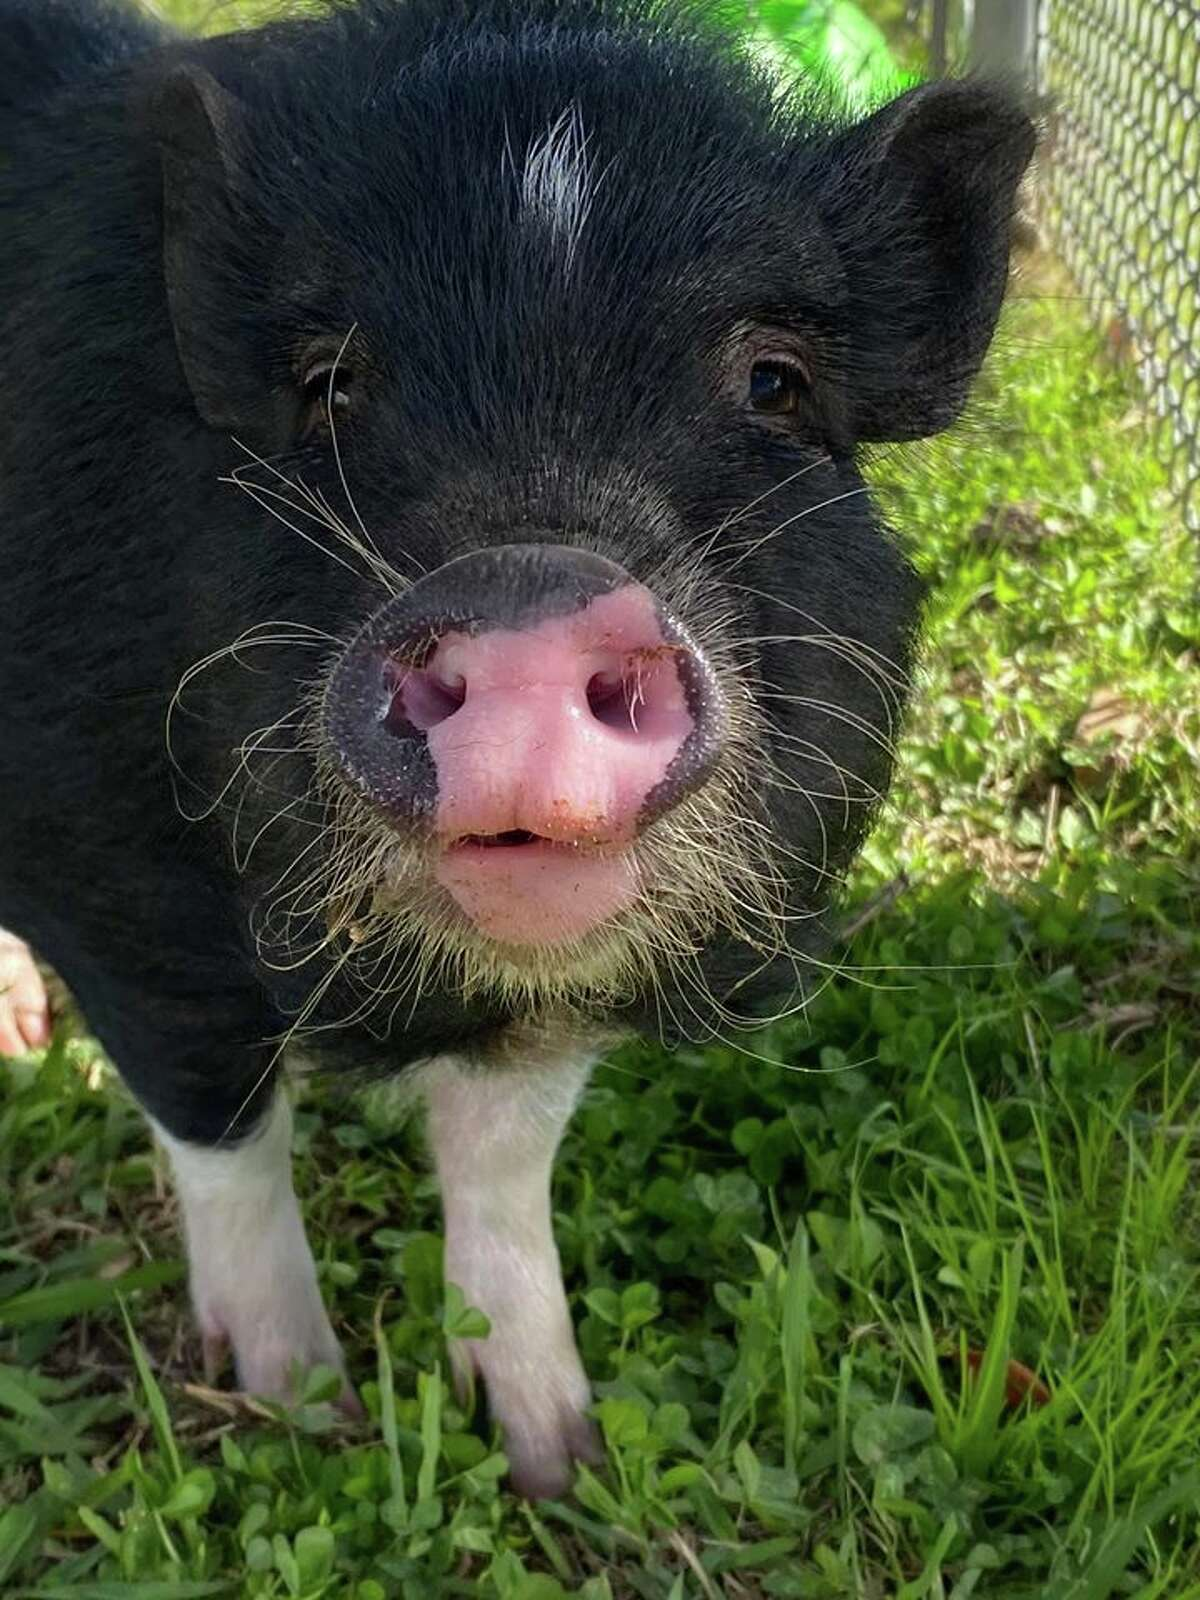 Shelter officials describe the animal as an ultra-friendly pig that loves kisses and pets. The well-behaved pig appeared clean and well-cared for, leading officials to believe she is someone's missing pet.